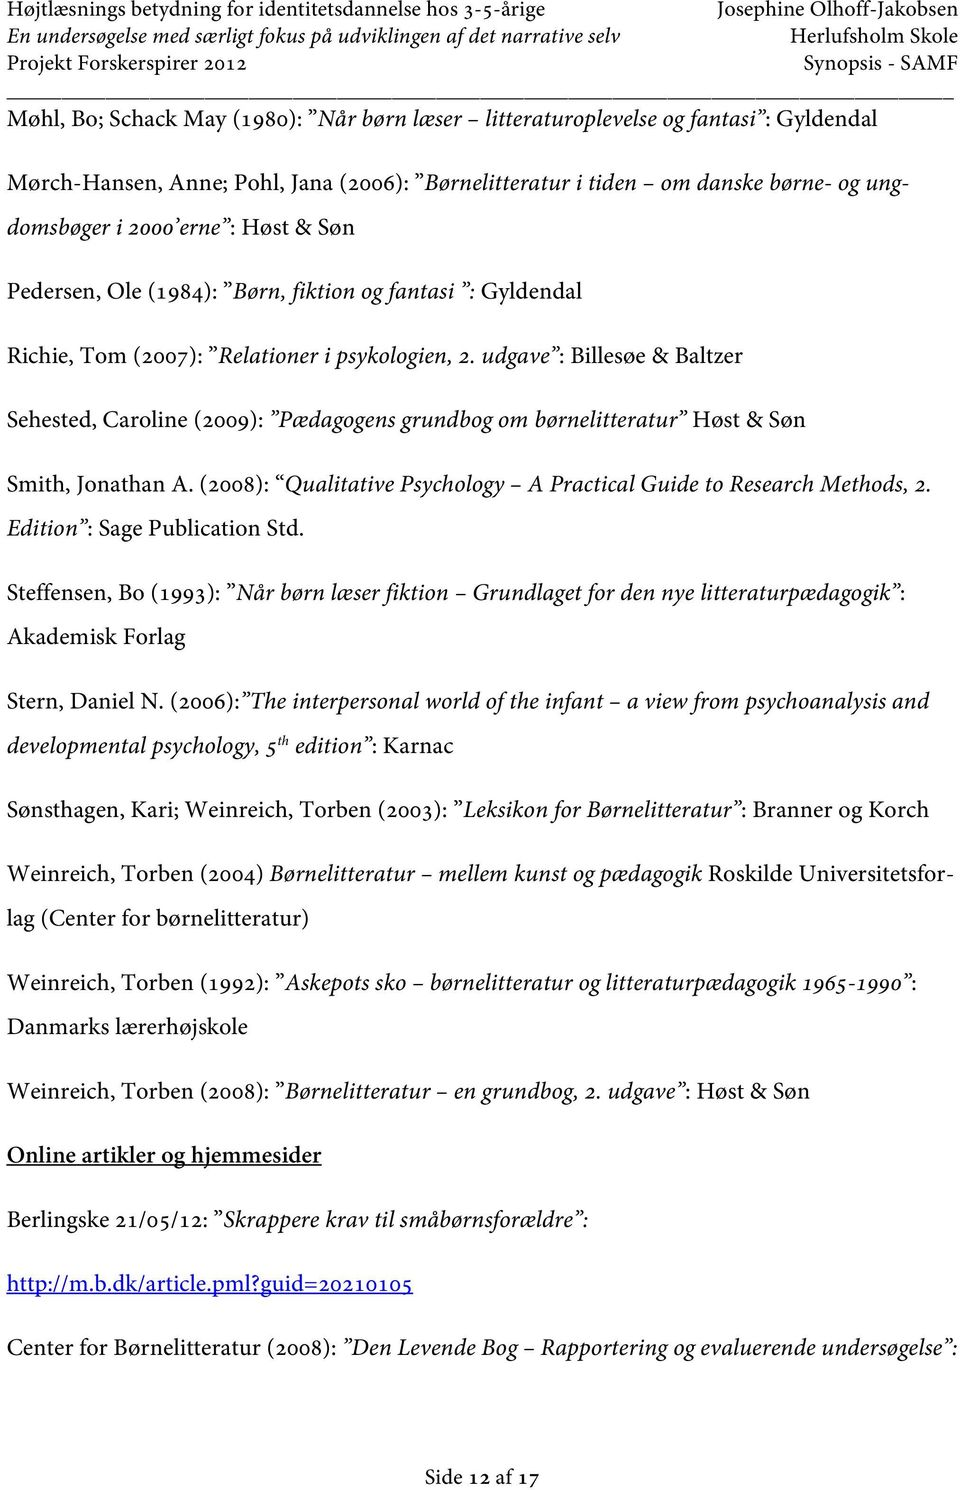 udgave : Billesøe & Baltzer Sehested, Caroline (2009): Pædagogens grundbog om børnelitteratur Høst & Søn Smith, Jonathan A. (2008): Qualitative Psychology A Practical Guide to Research Methods, 2.